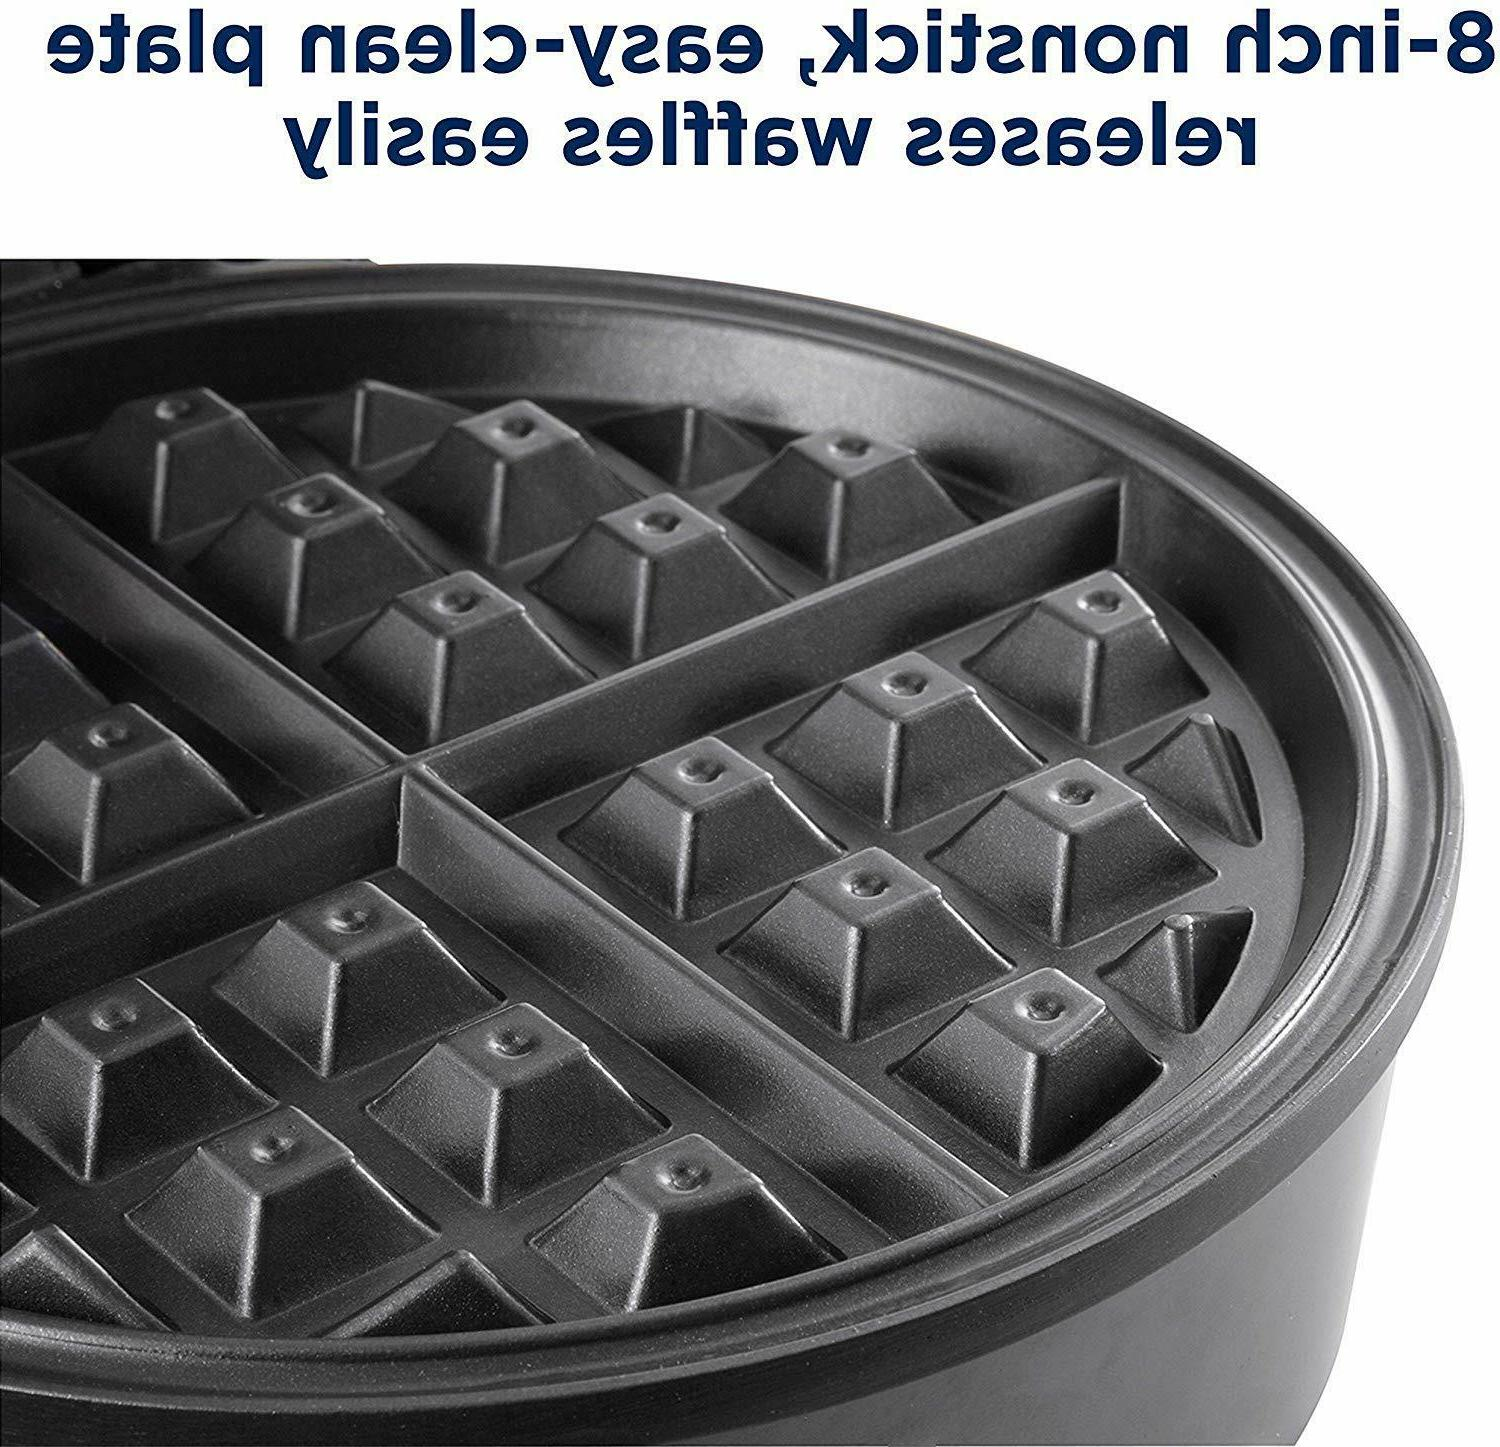 Oster Belgian Stainless Steel Grill NEW